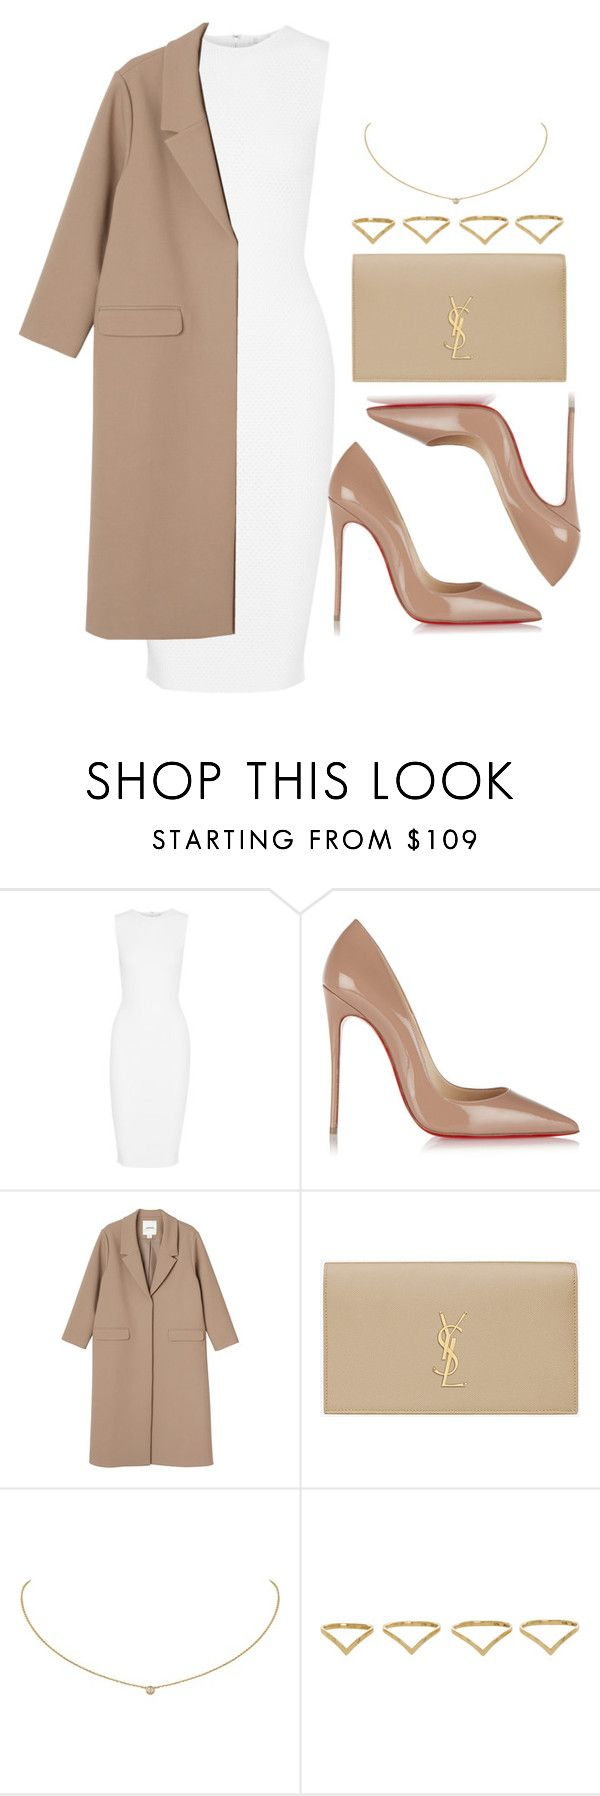 """""""Style #11586"""" by vany-alvarado ❤ liked on Polyvore featuring Victoria Beckham, Christian Louboutin, Monki, Yves Saint Laurent, Cartier and Ana Khouri"""